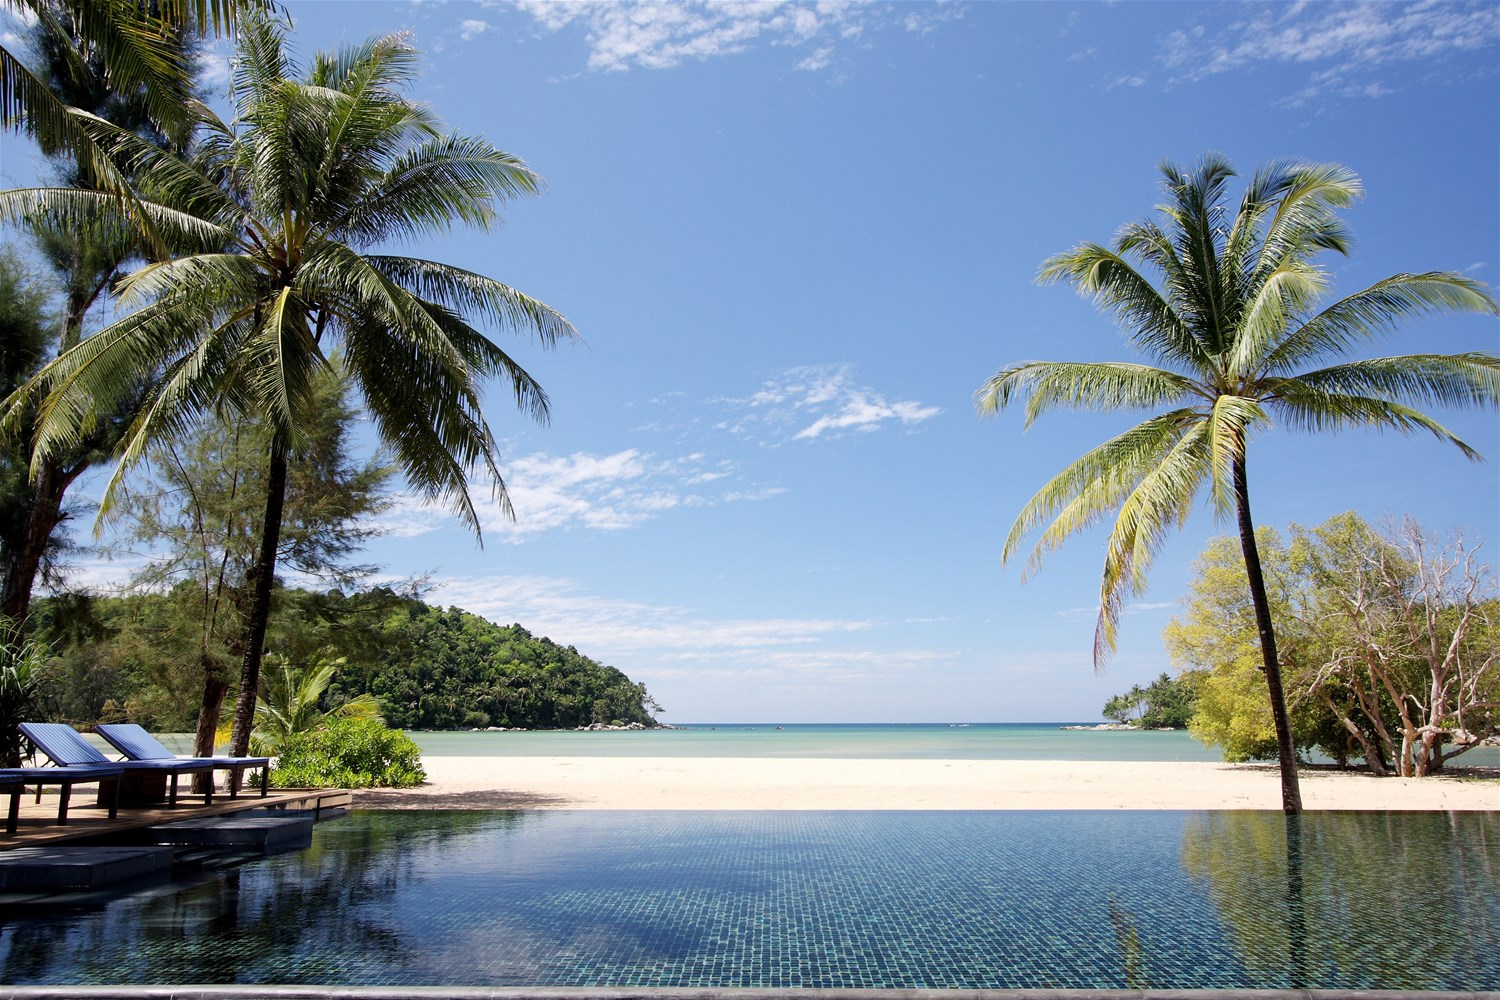 Anantara Phuket Layan Beach Resort